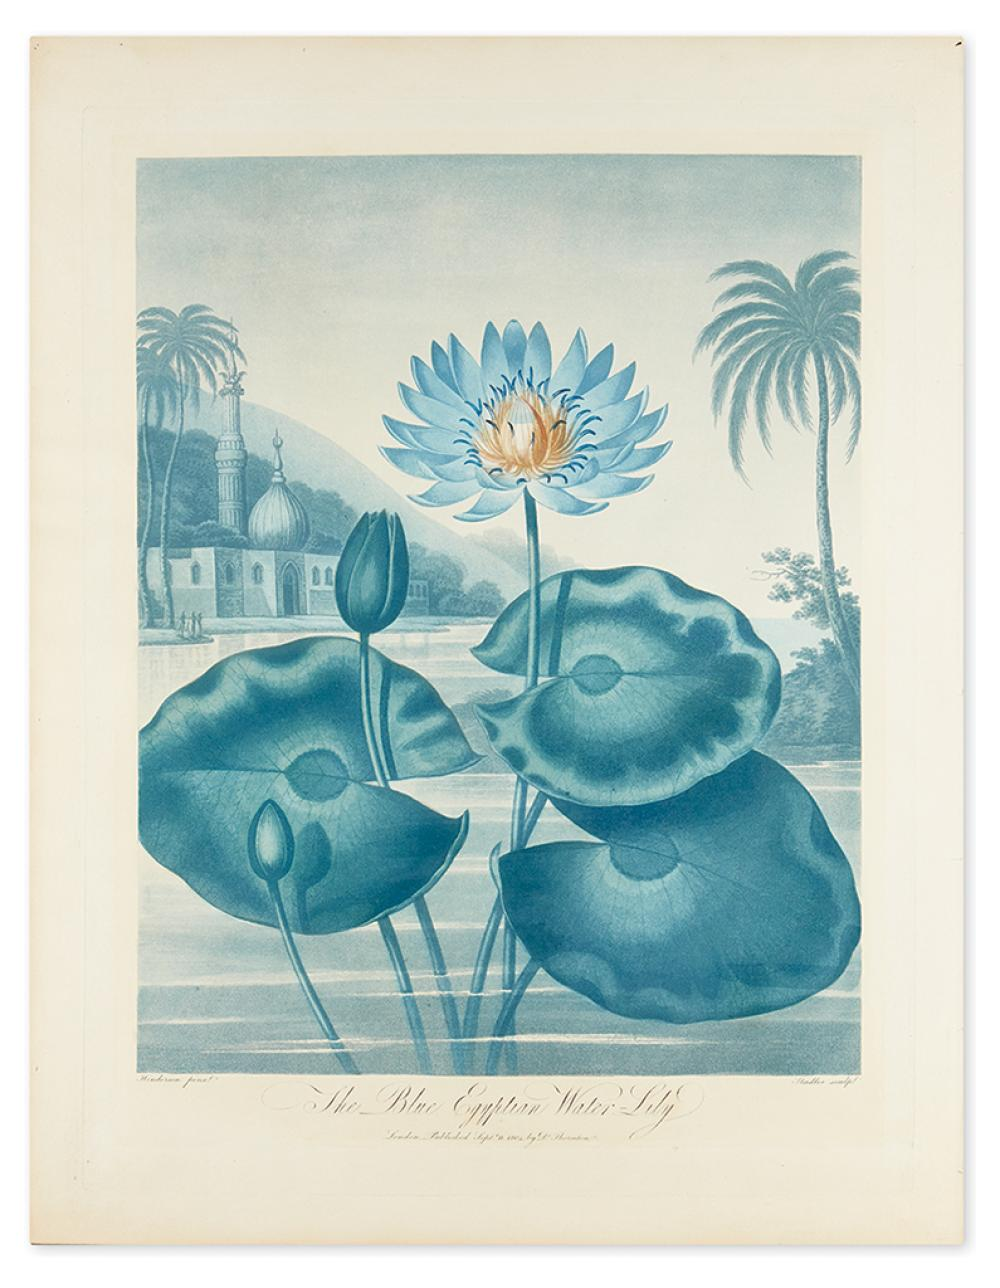 THORNTON, ROBERT JOHN. The Blue Egyptian Water-Lily.